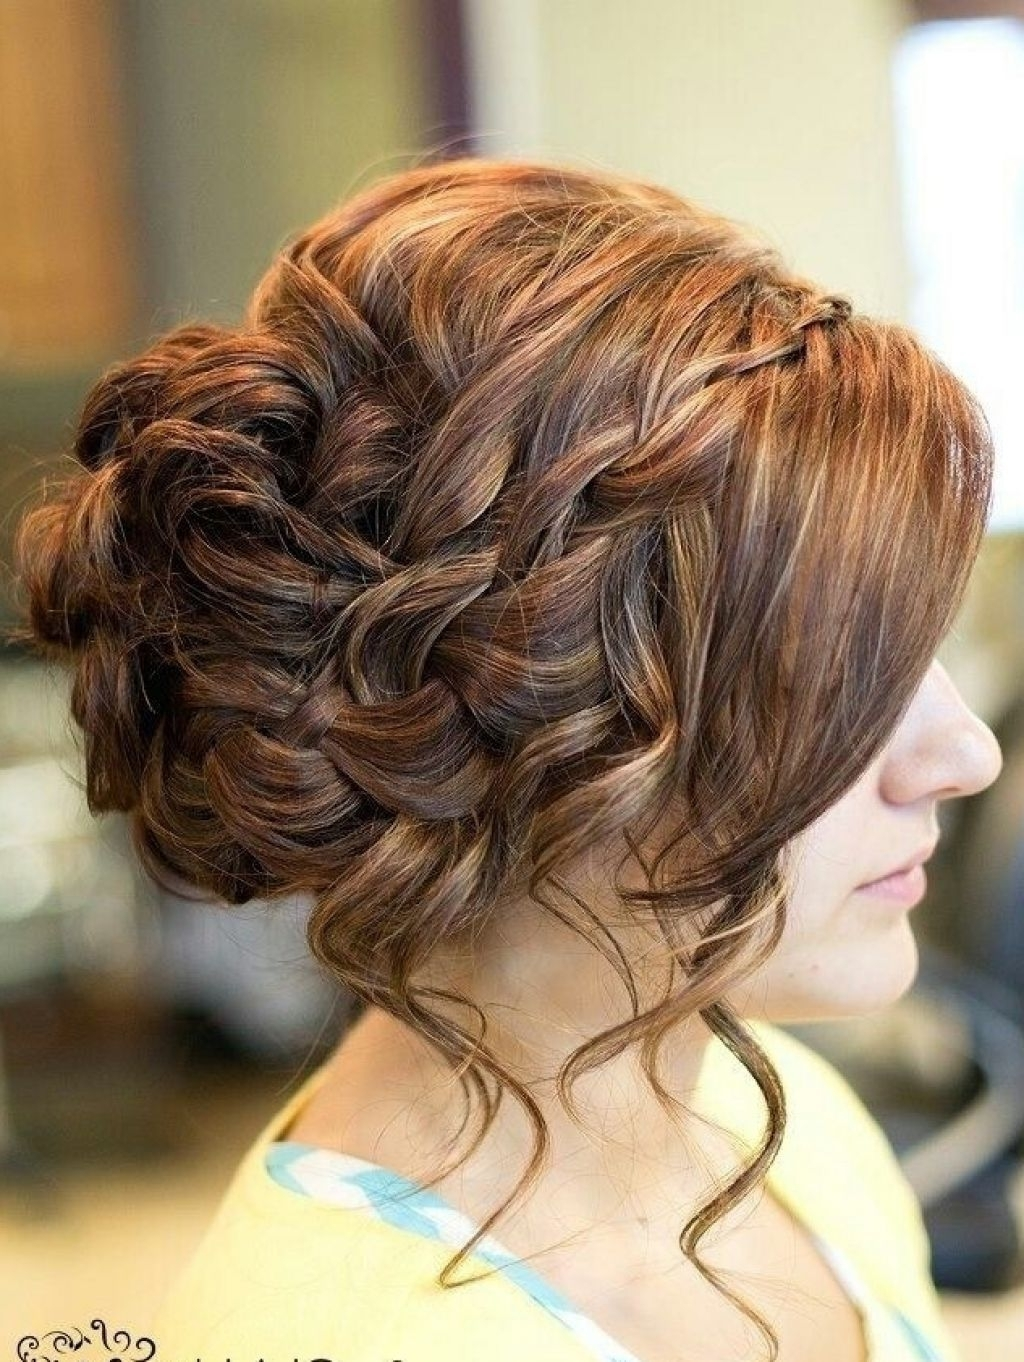 Prom Hairstyles For Long Hair That Are Simply Adorable With Regard To Braided Bun Updo Hairstyles (View 15 of 15)